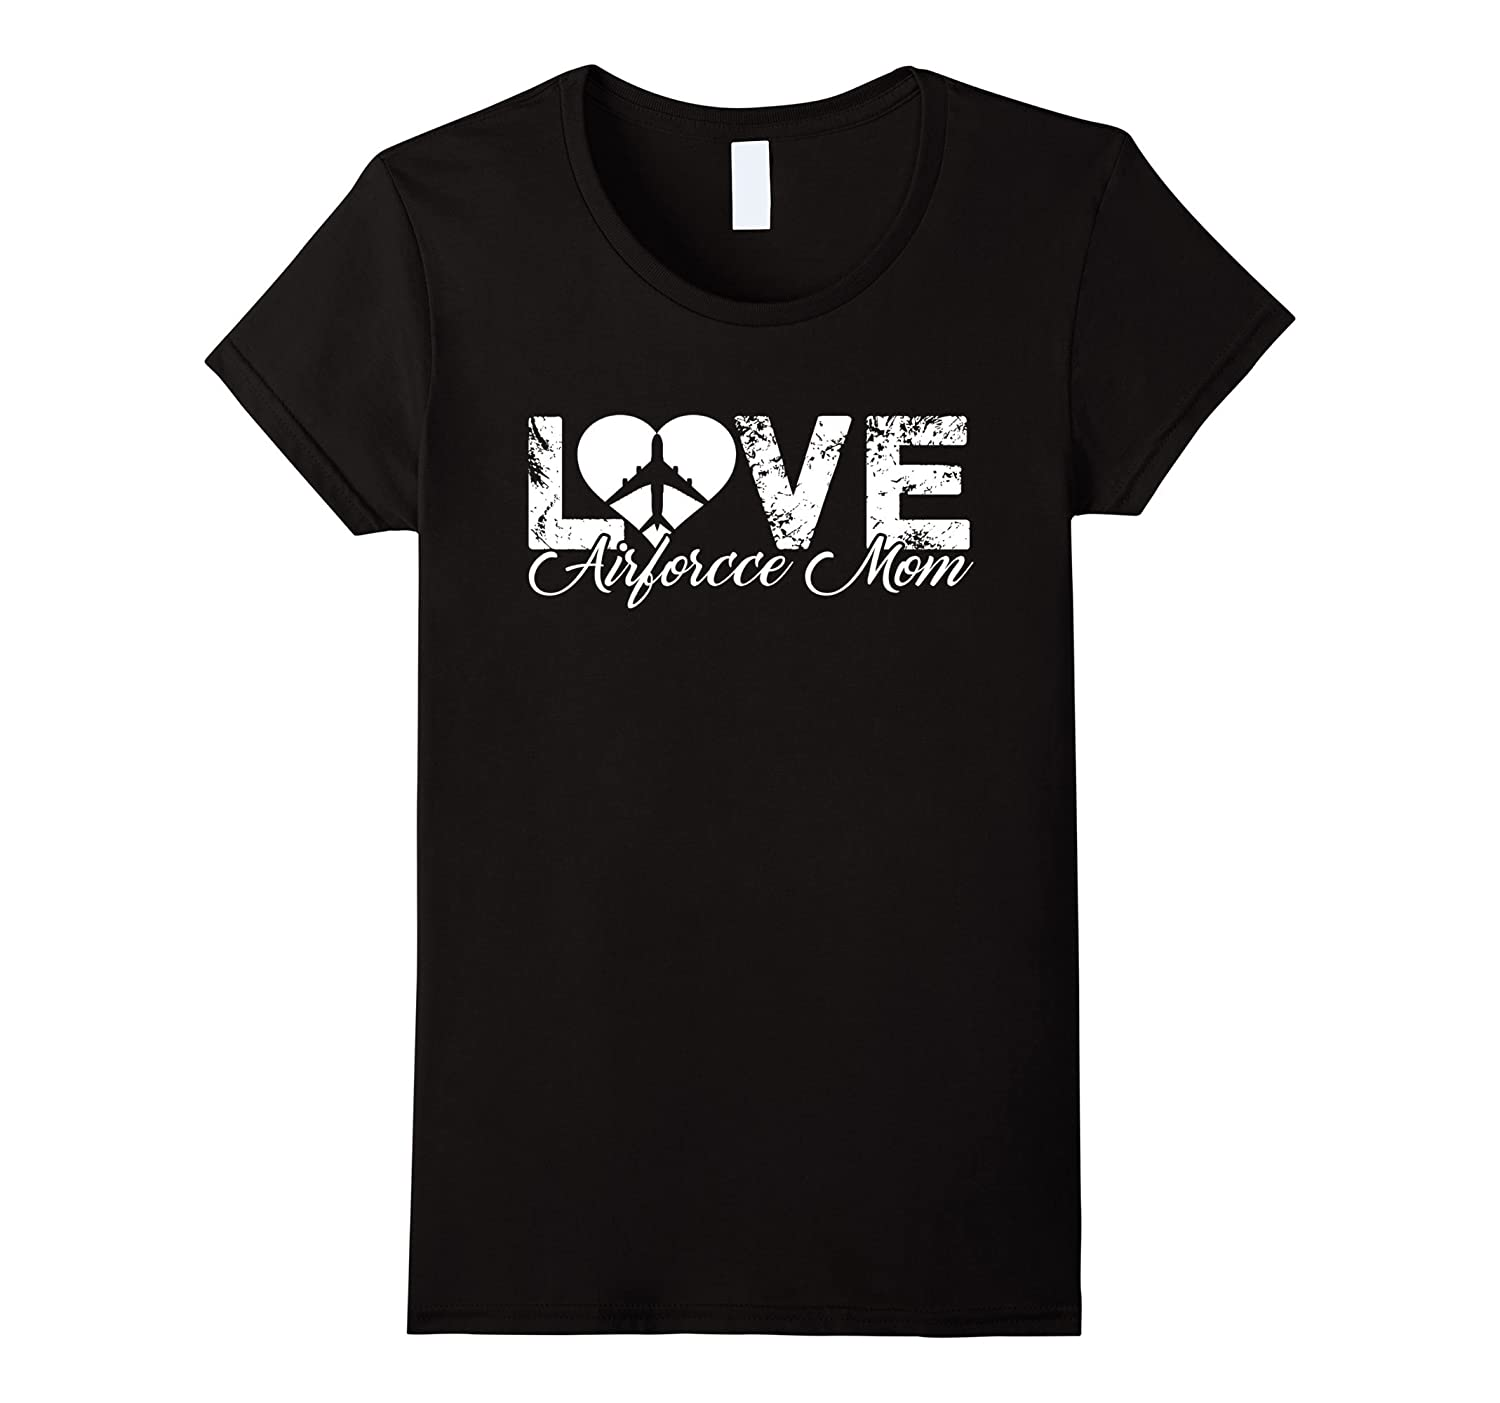 Air Force Mom Shirt – Love Air Force Mom Tshirt